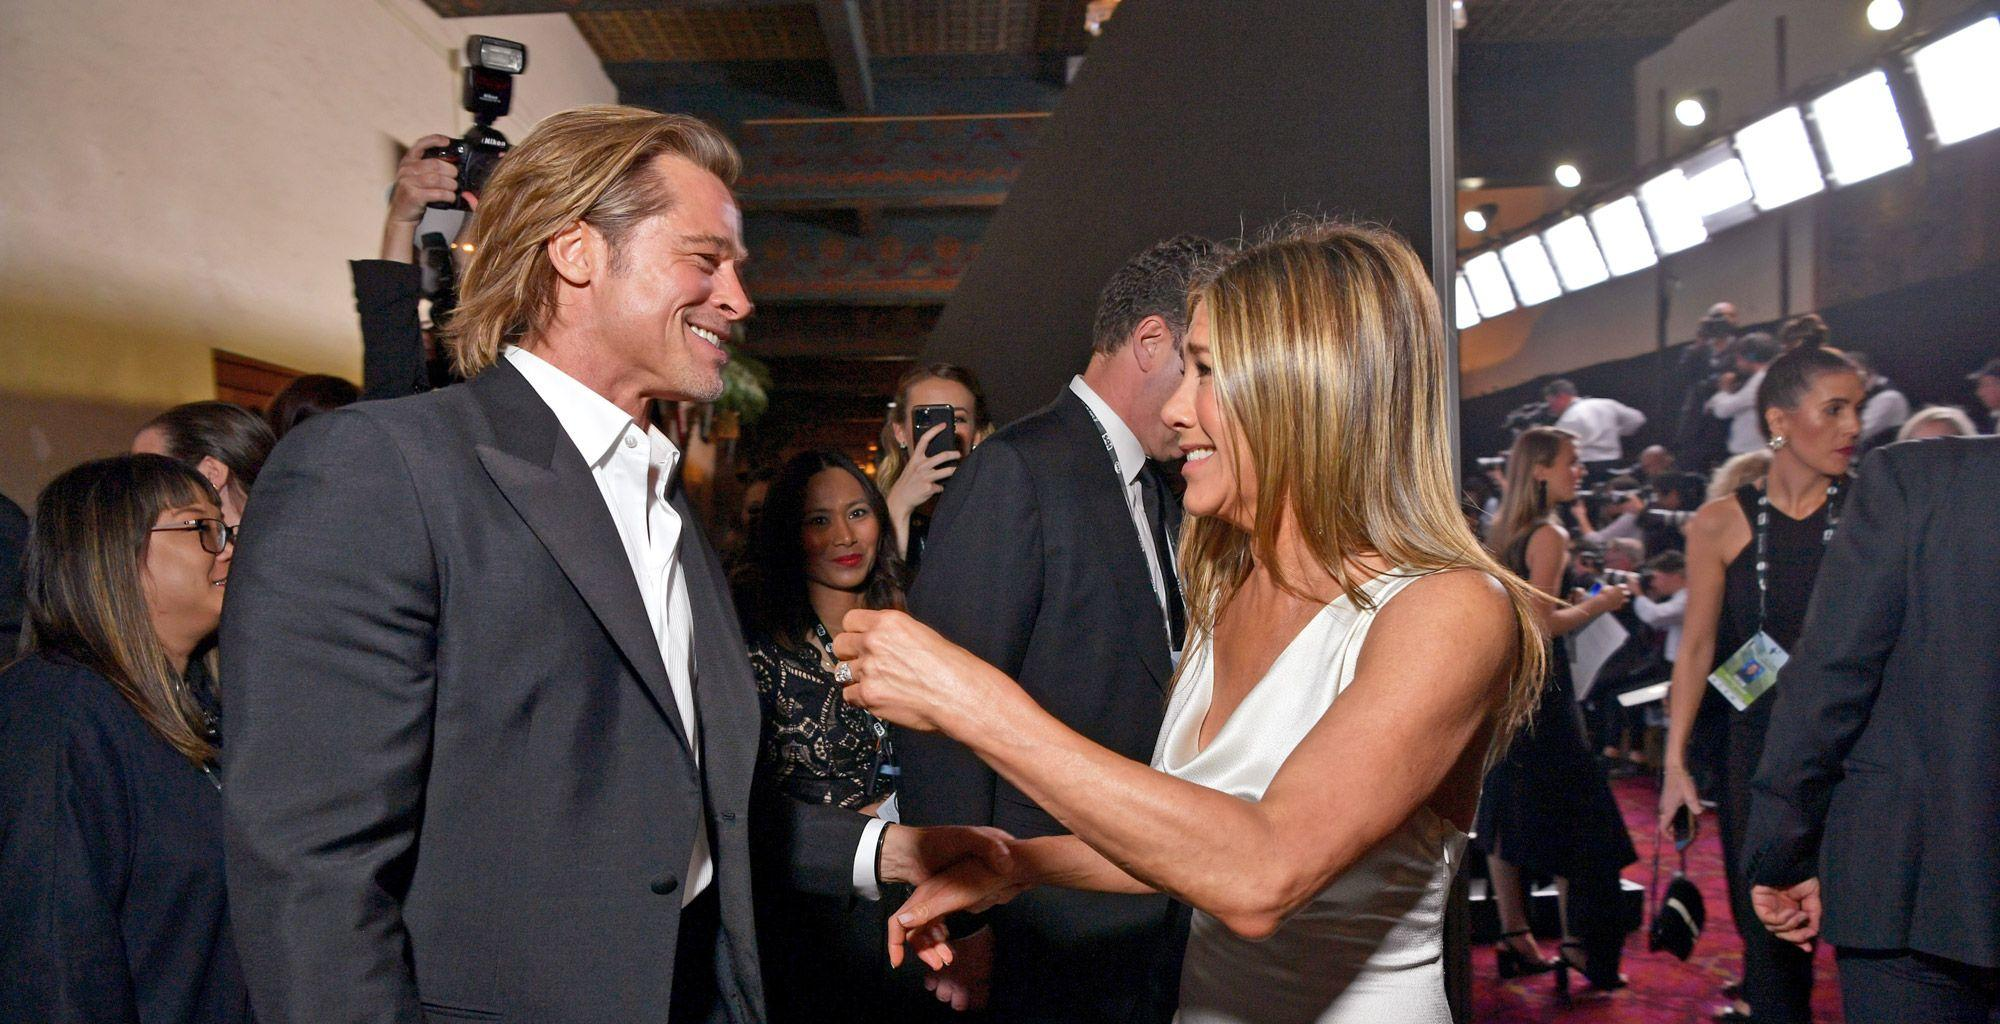 Wendy Williams Gushes Over Brad Pitt And Jennifer Aniston's Sweet Reunion At The SAG Awards - Here's Why She Wants Them Back Together!